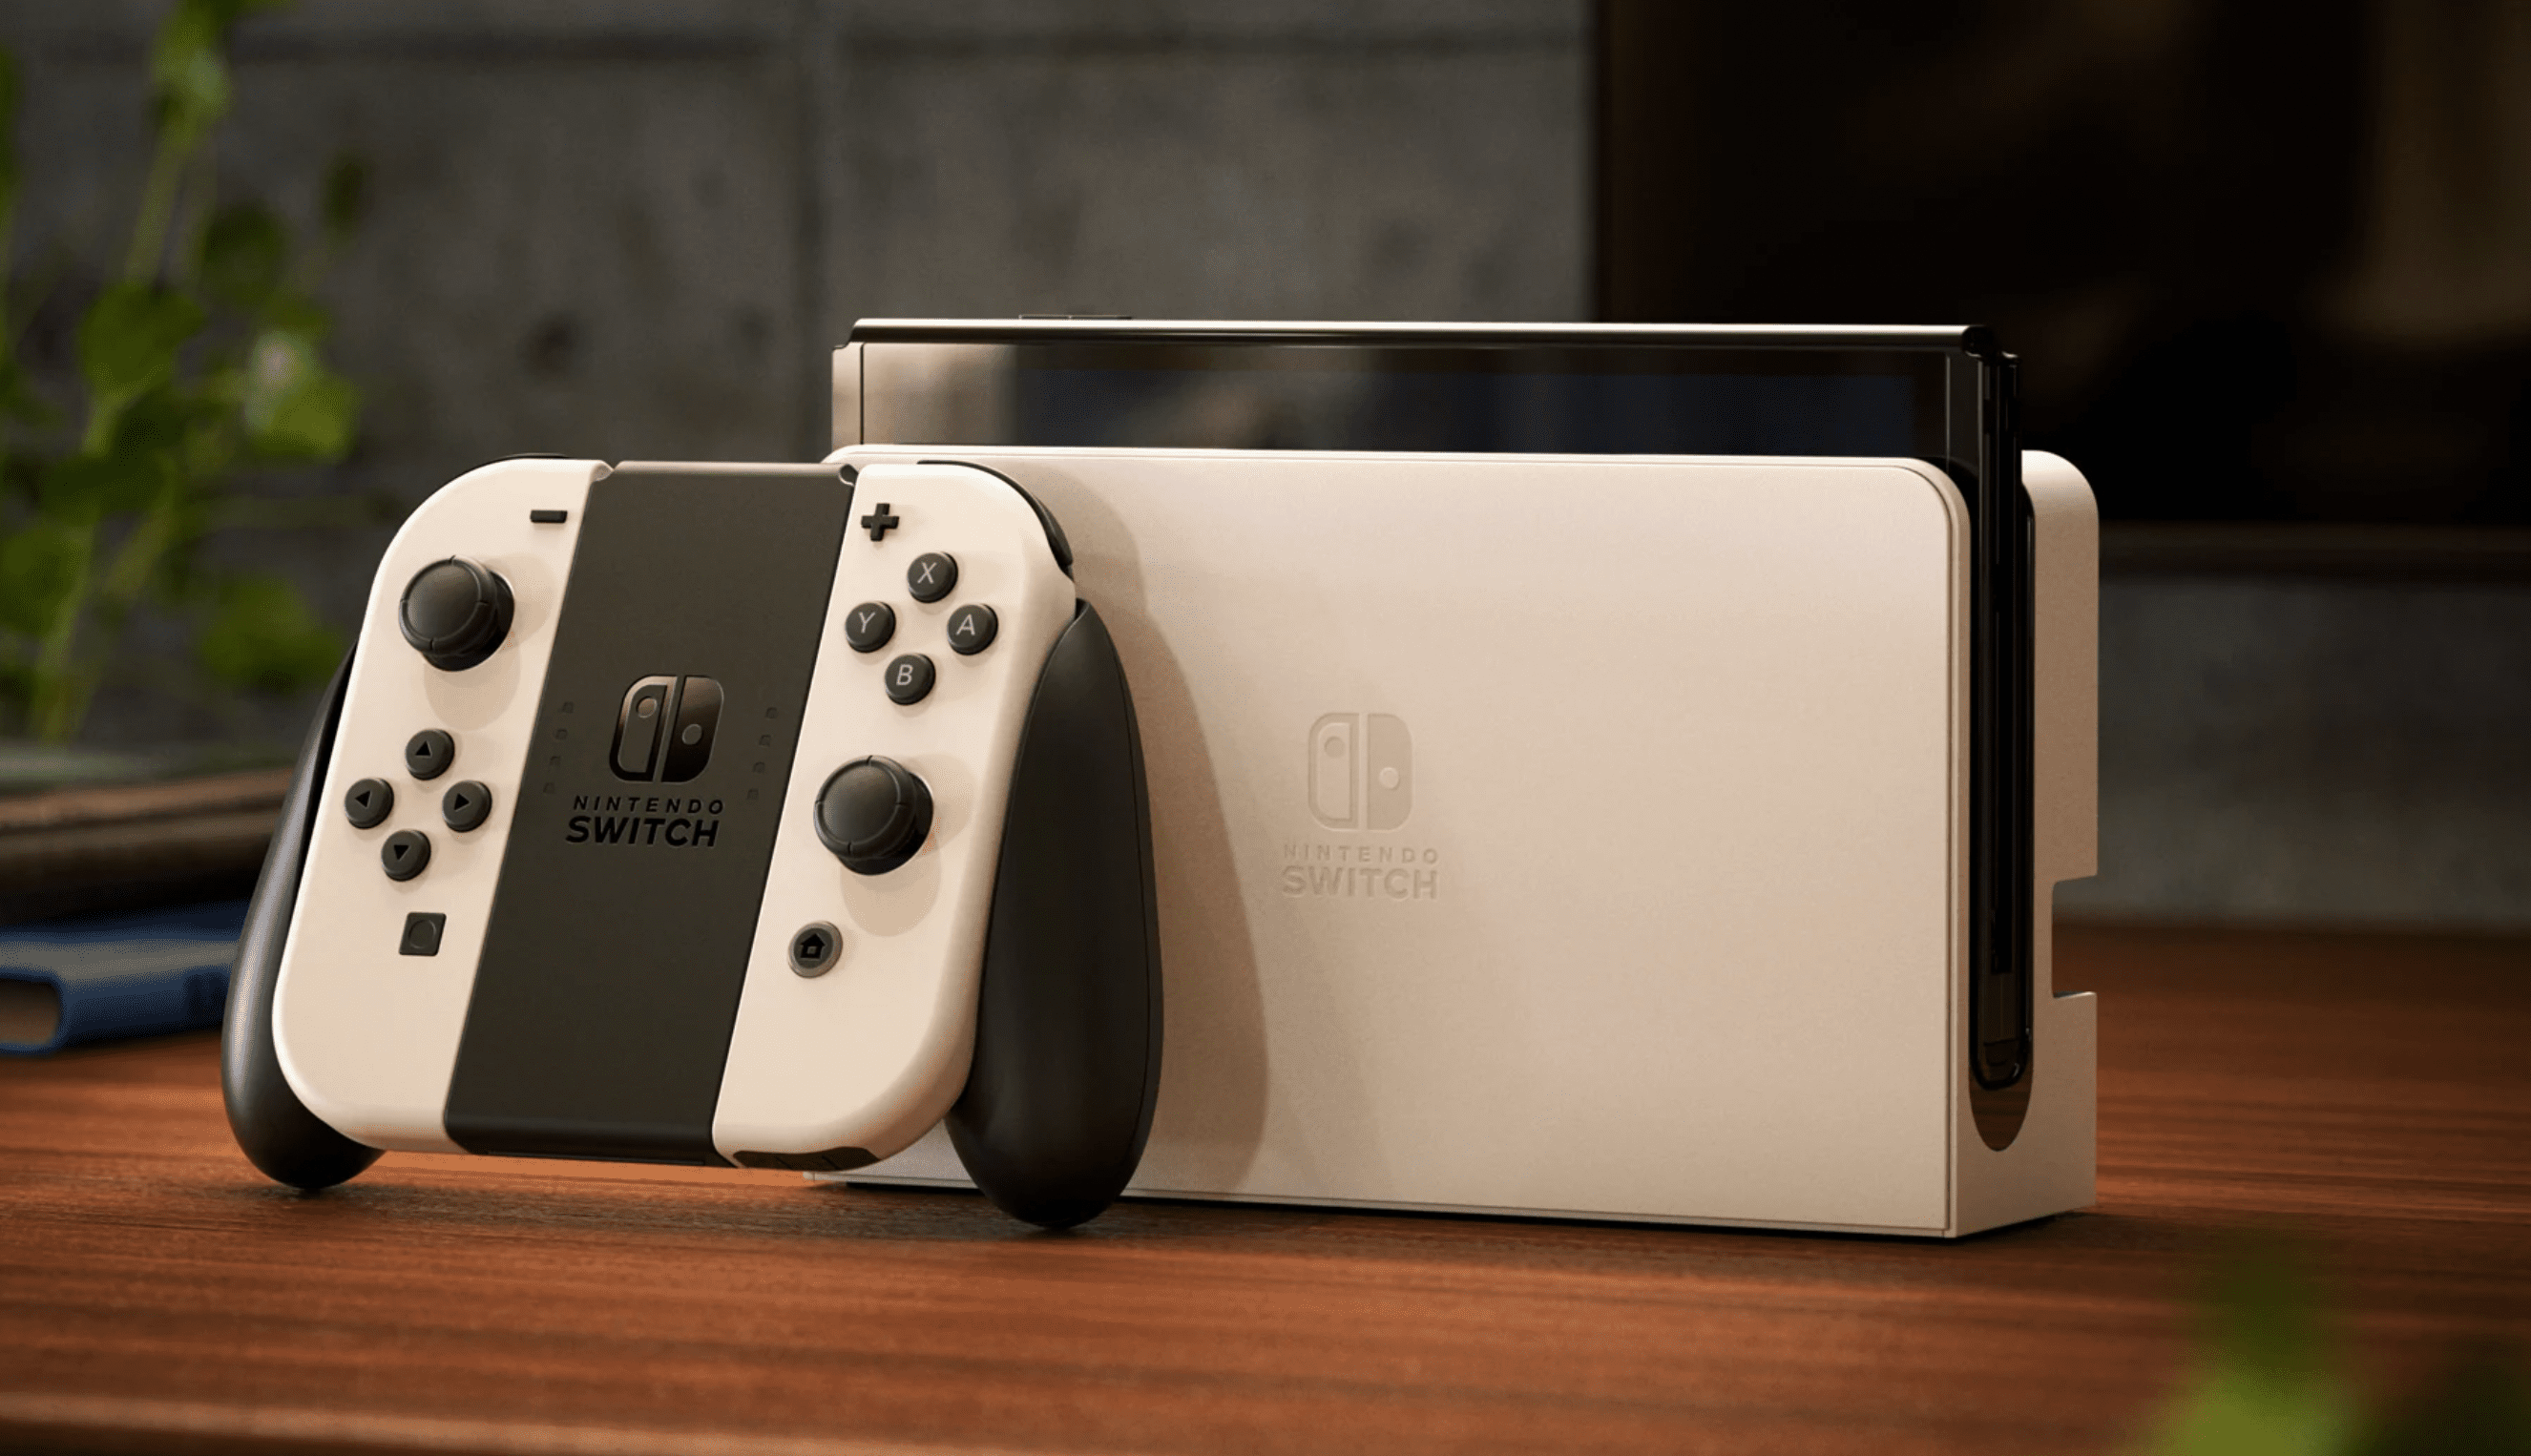 Nintendo Switch OLED Model in white and sitting on a wood desk